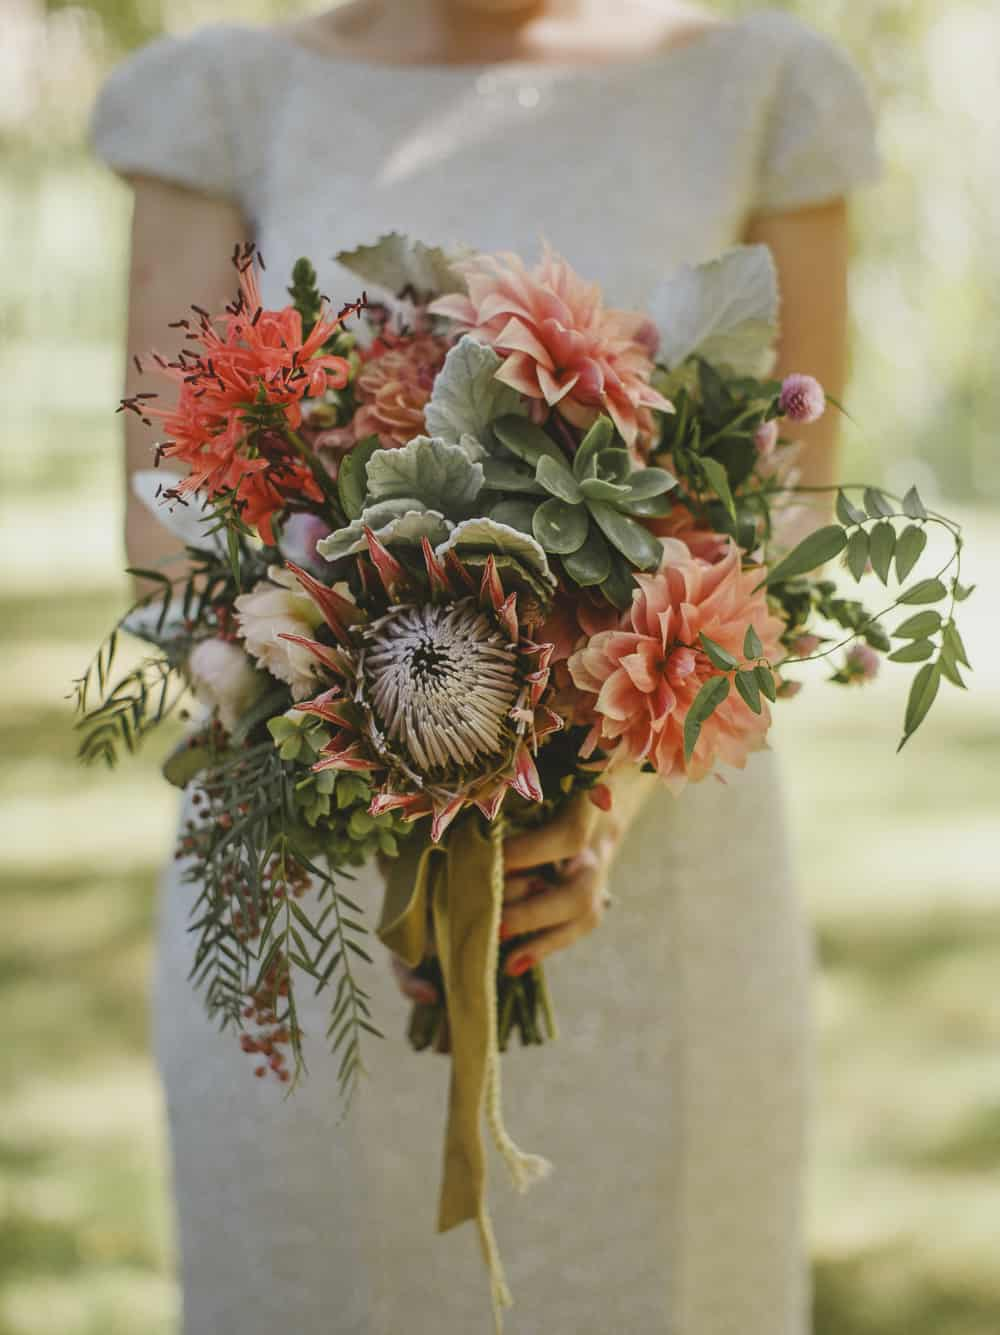 Dahlia and protea bouquet by Mikarla Bauer / Suzanne Harward gown